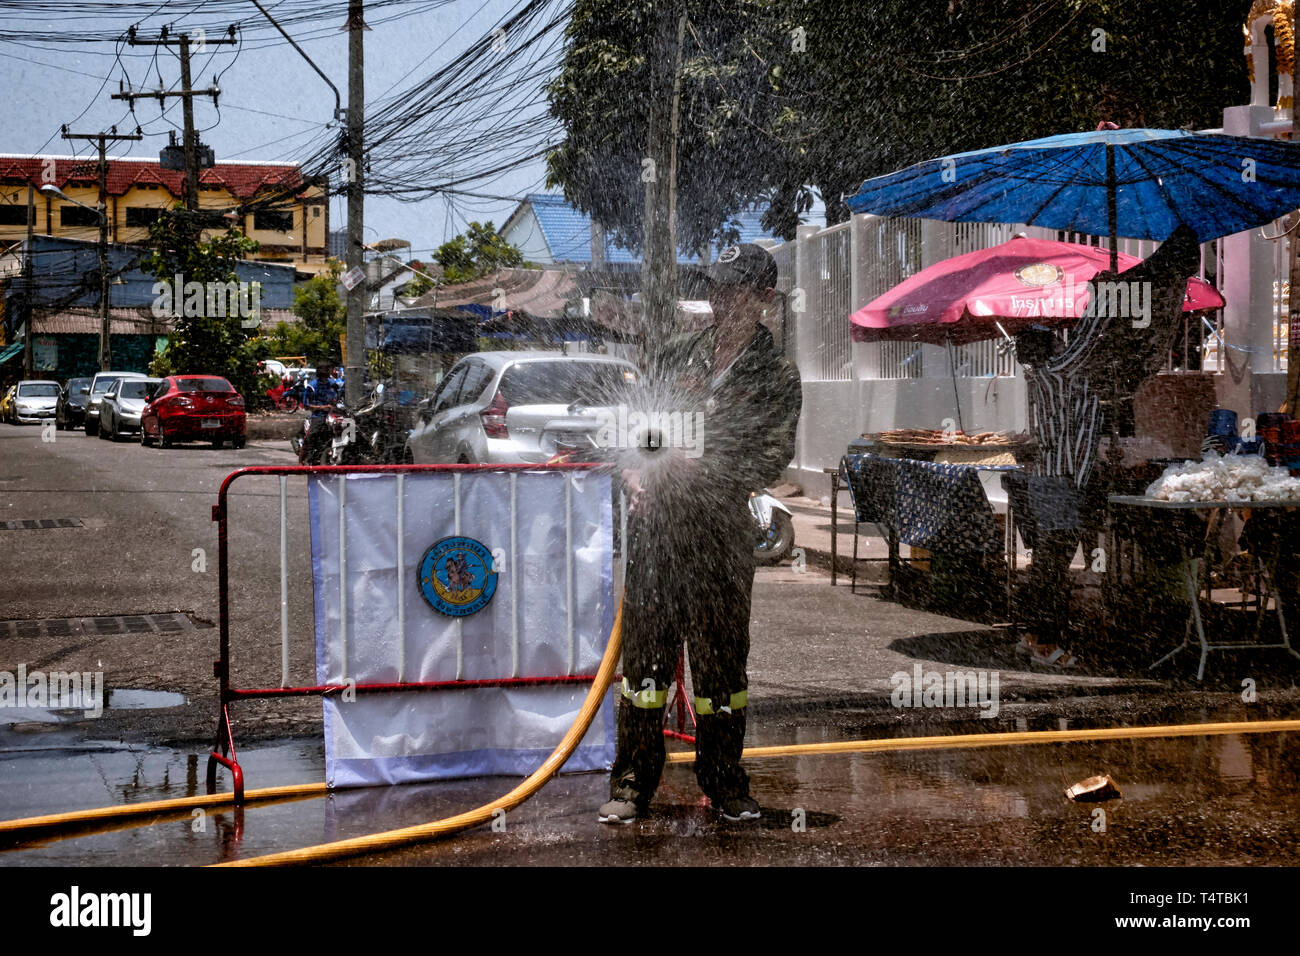 Songkran Thailand New Year and water festival 2019 with hosepipe used to spray water over passing motorists - Stock Image